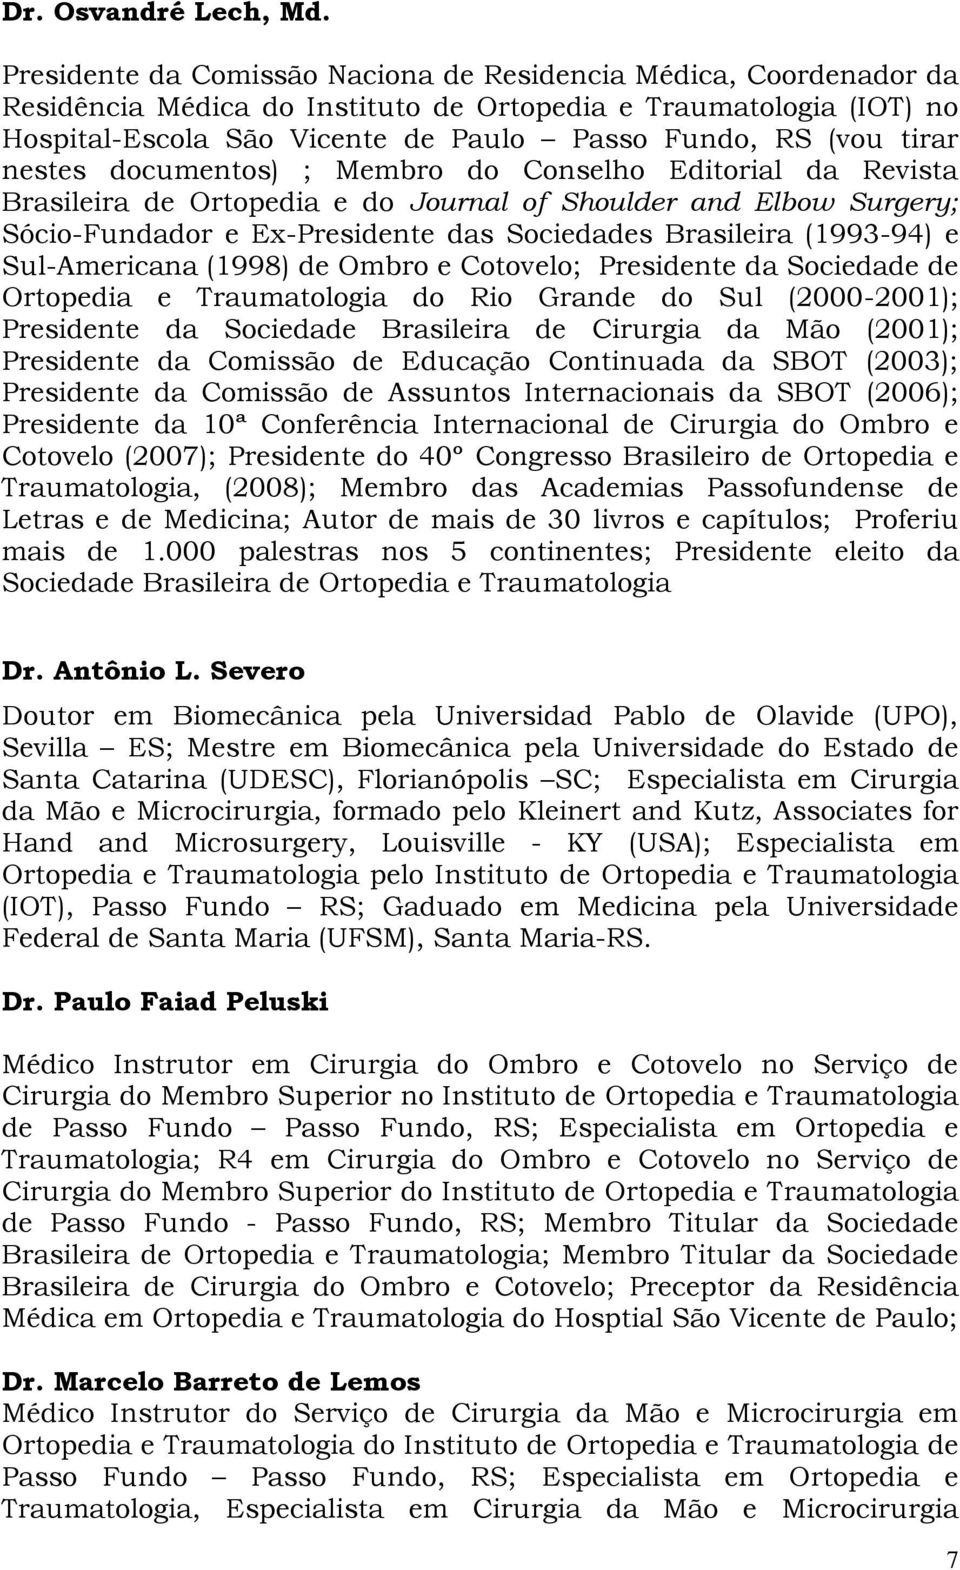 tirar nestes documentos) ; Membro do Conselho Editorial da Revista Brasileira de Ortopedia e do Journal of Shoulder and Elbow Surgery; Sócio-Fundador e Ex-Presidente das Sociedades Brasileira